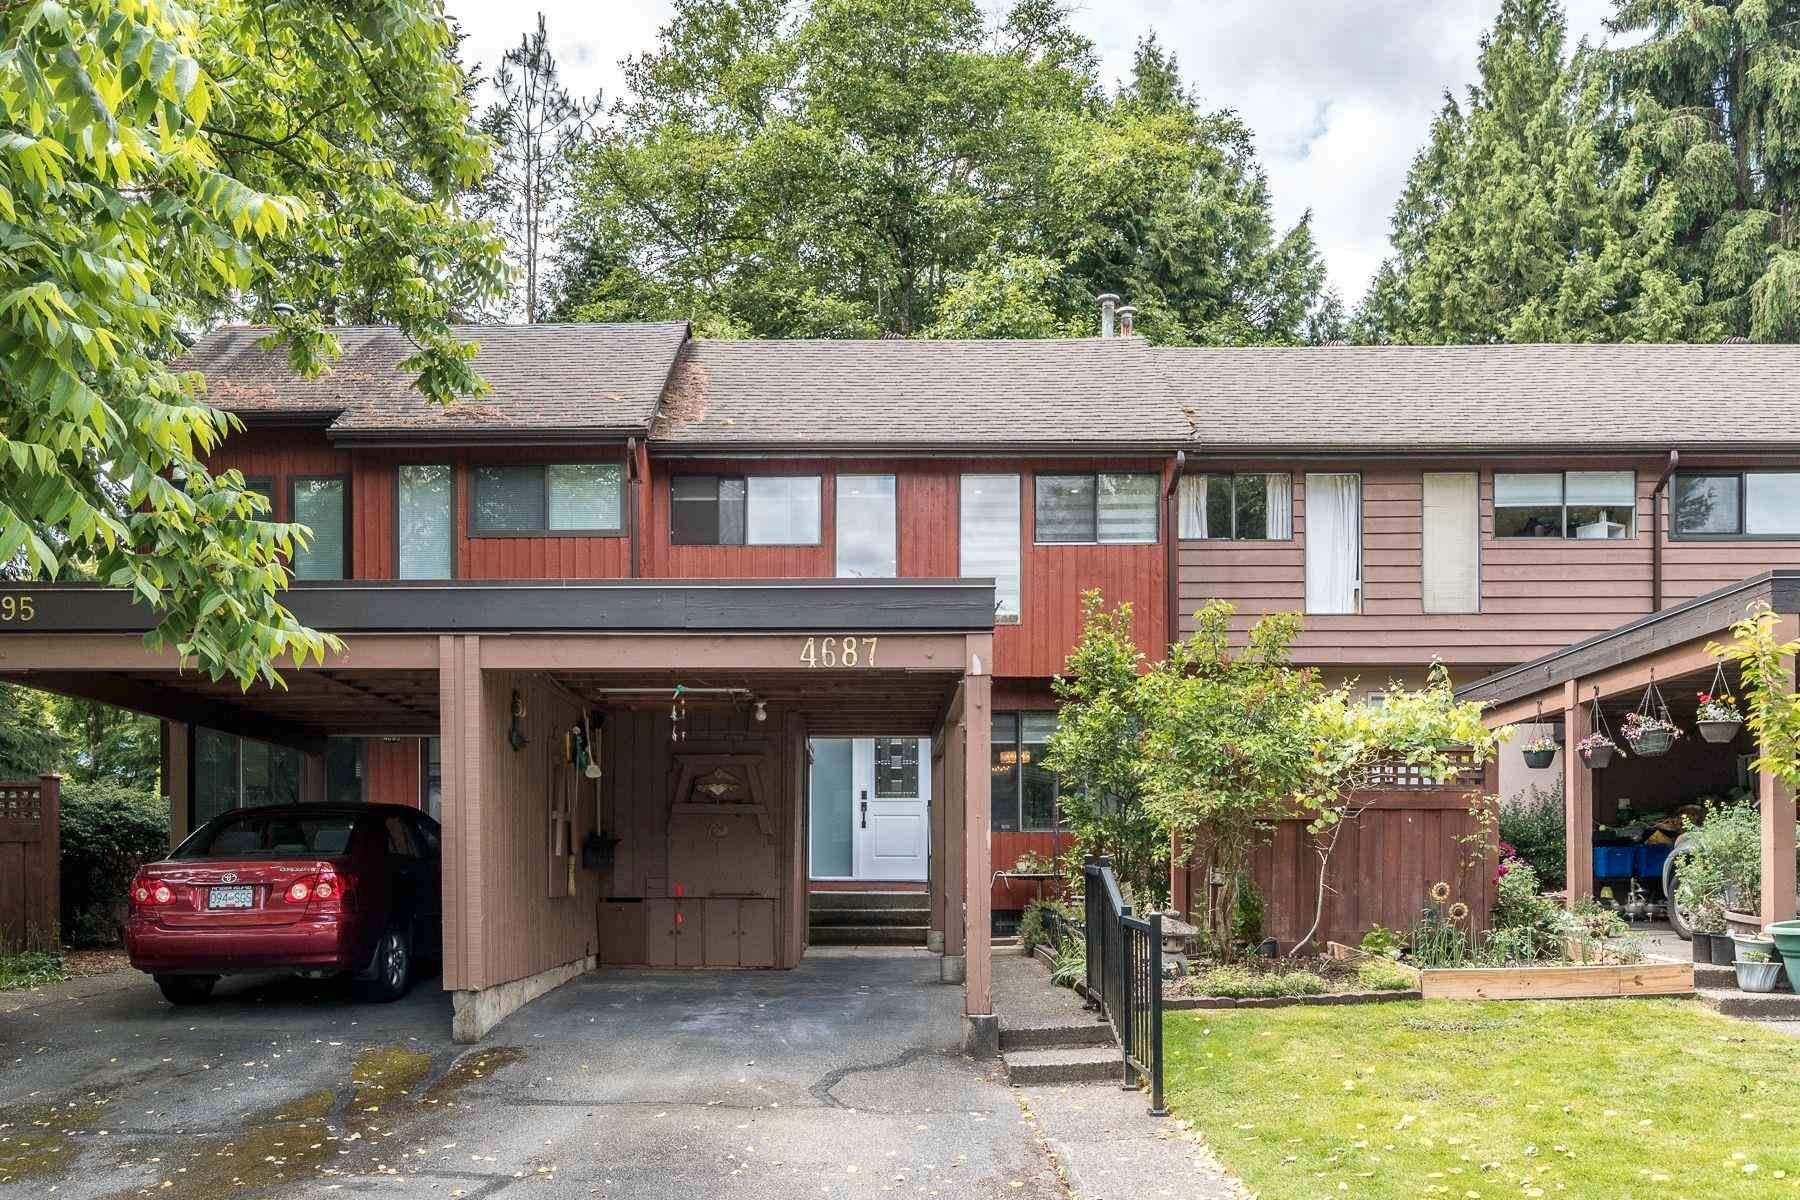 """Main Photo: 4687 GARDEN GROVE Drive in Burnaby: Greentree Village Townhouse for sale in """"Greentree Village"""" (Burnaby South)  : MLS®# R2599679"""